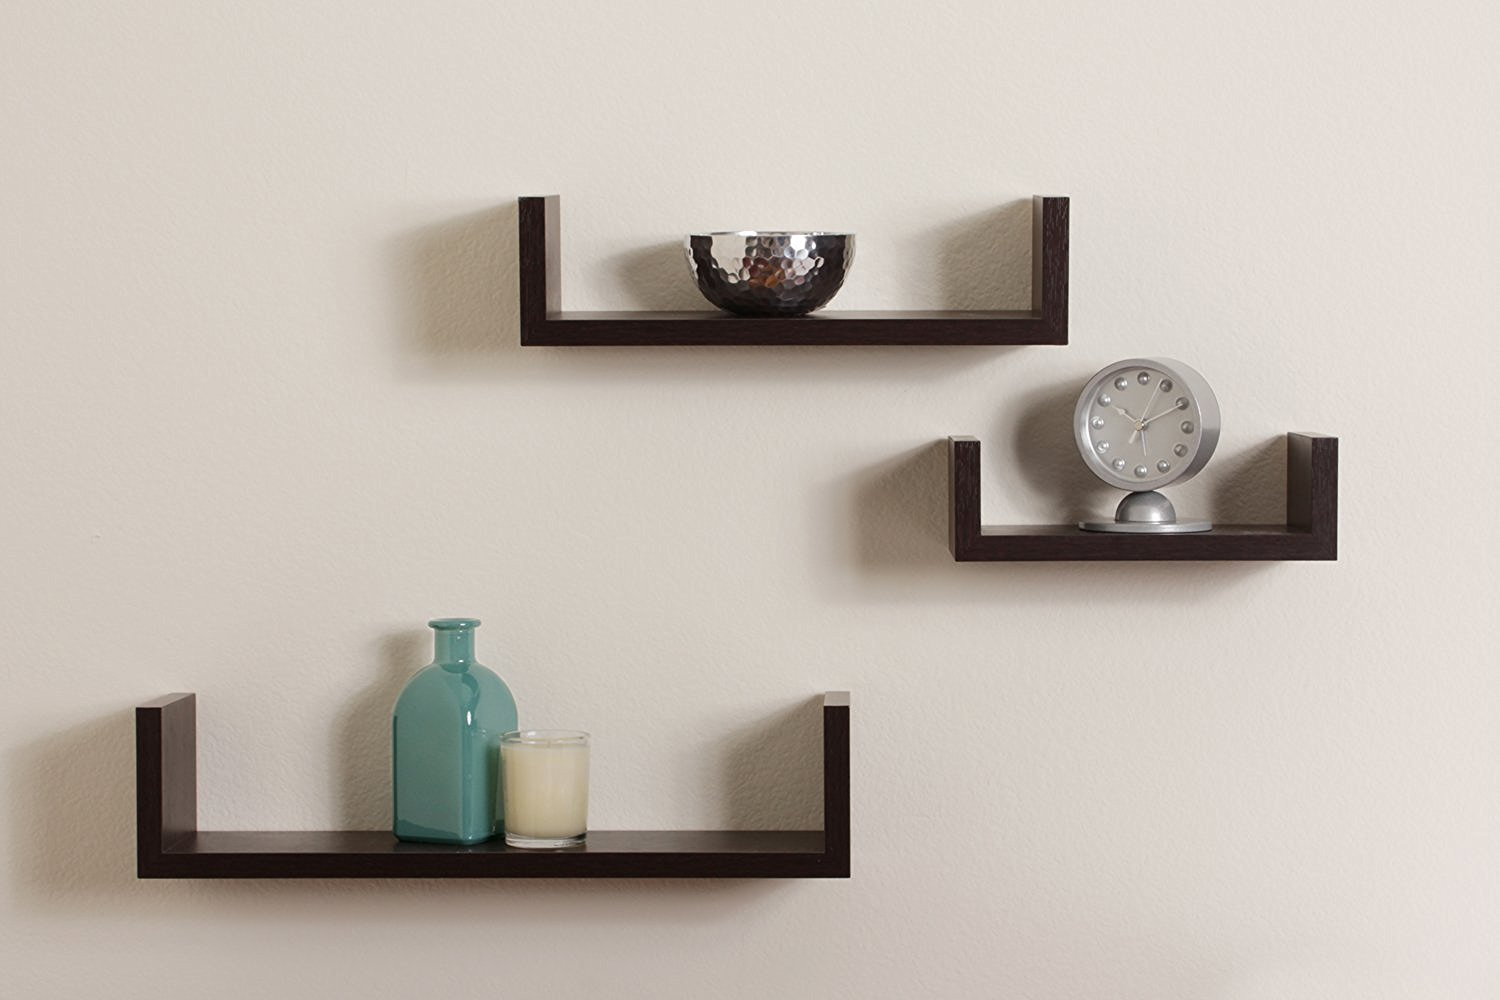 floating shelves wall pmpresssecretariat shaped black shelf ledge top review narrow bathroom storage garage brackets custom shoe audio video component rack closet solutions inc